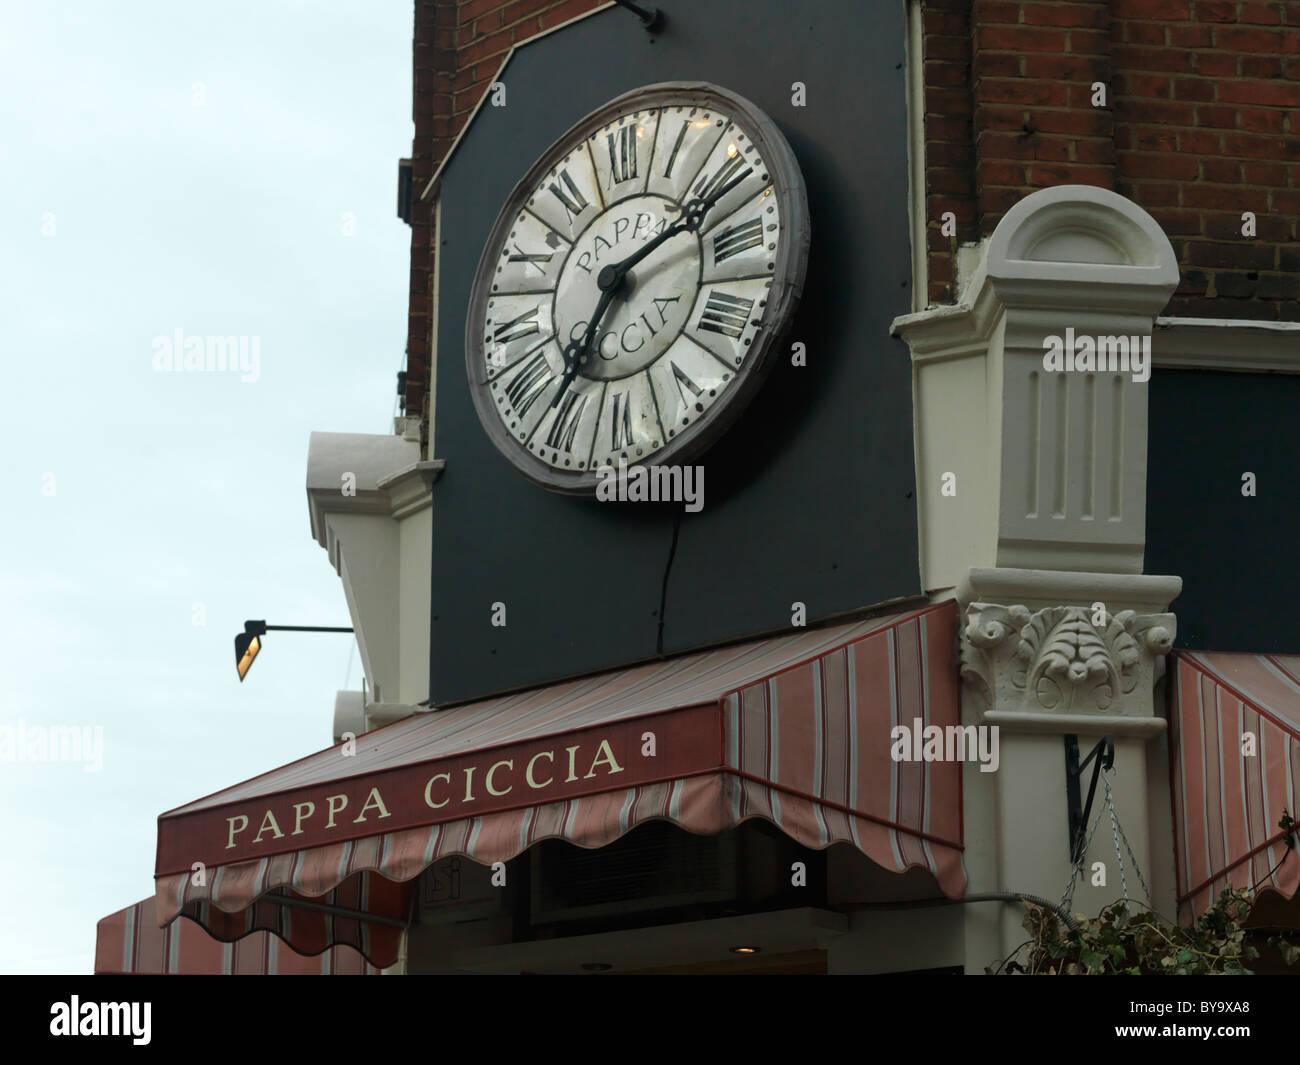 London England Large Clock With Roman Numerals Above Italian Restaurant Pappa Ciccia - Stock Image